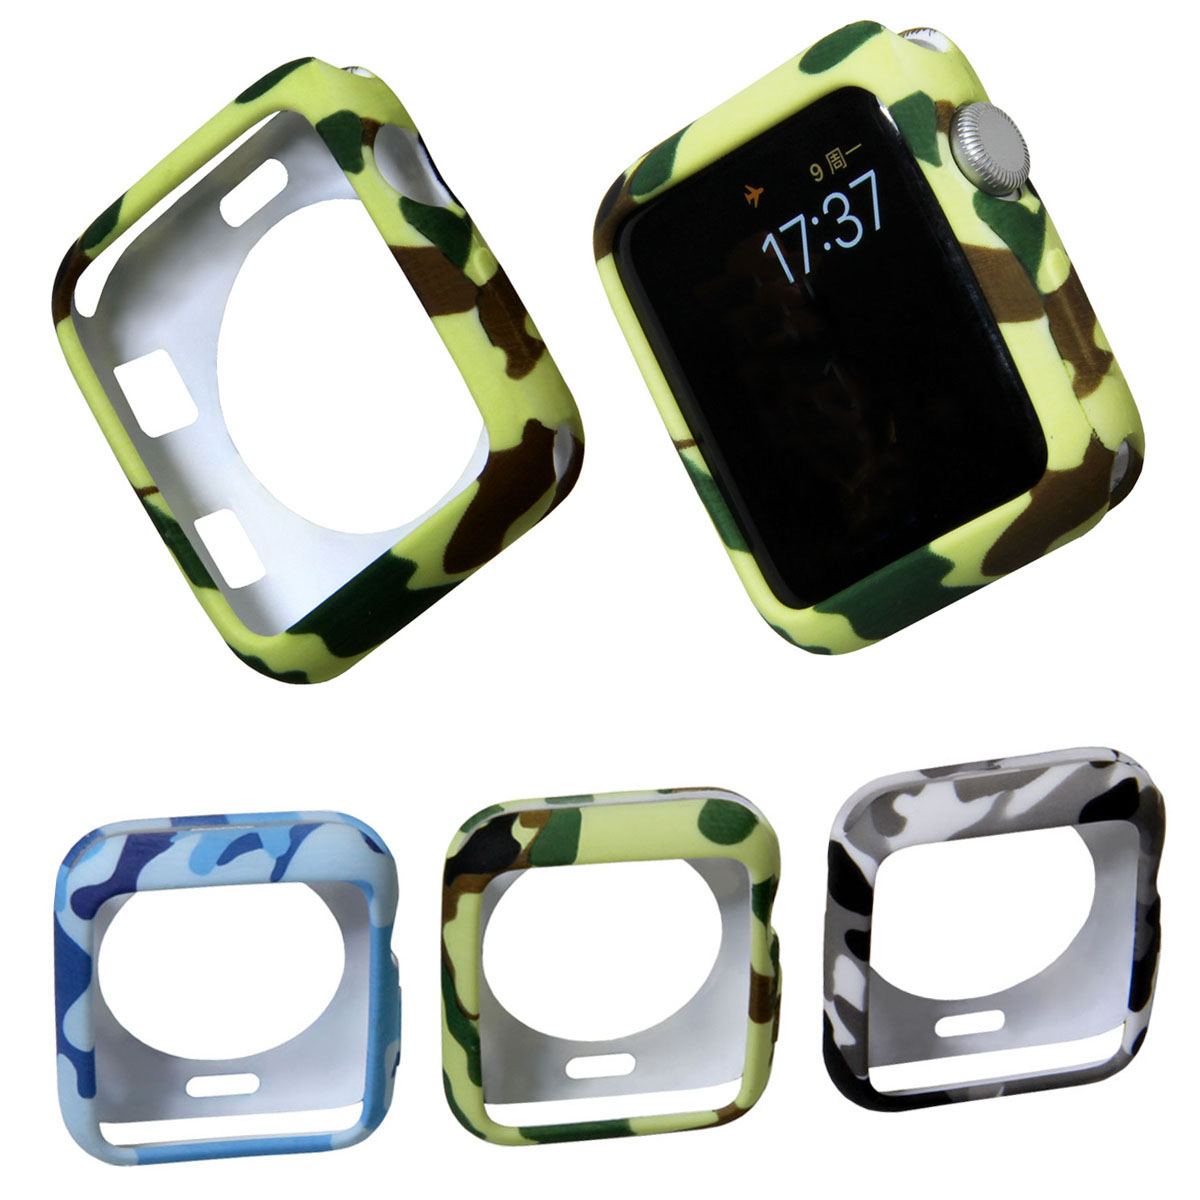 Cover for Apple Watch Series 3 2 1 38mm 42mm Case Protector Camouflage Soft Silicone Full Case for iWatch Accessories